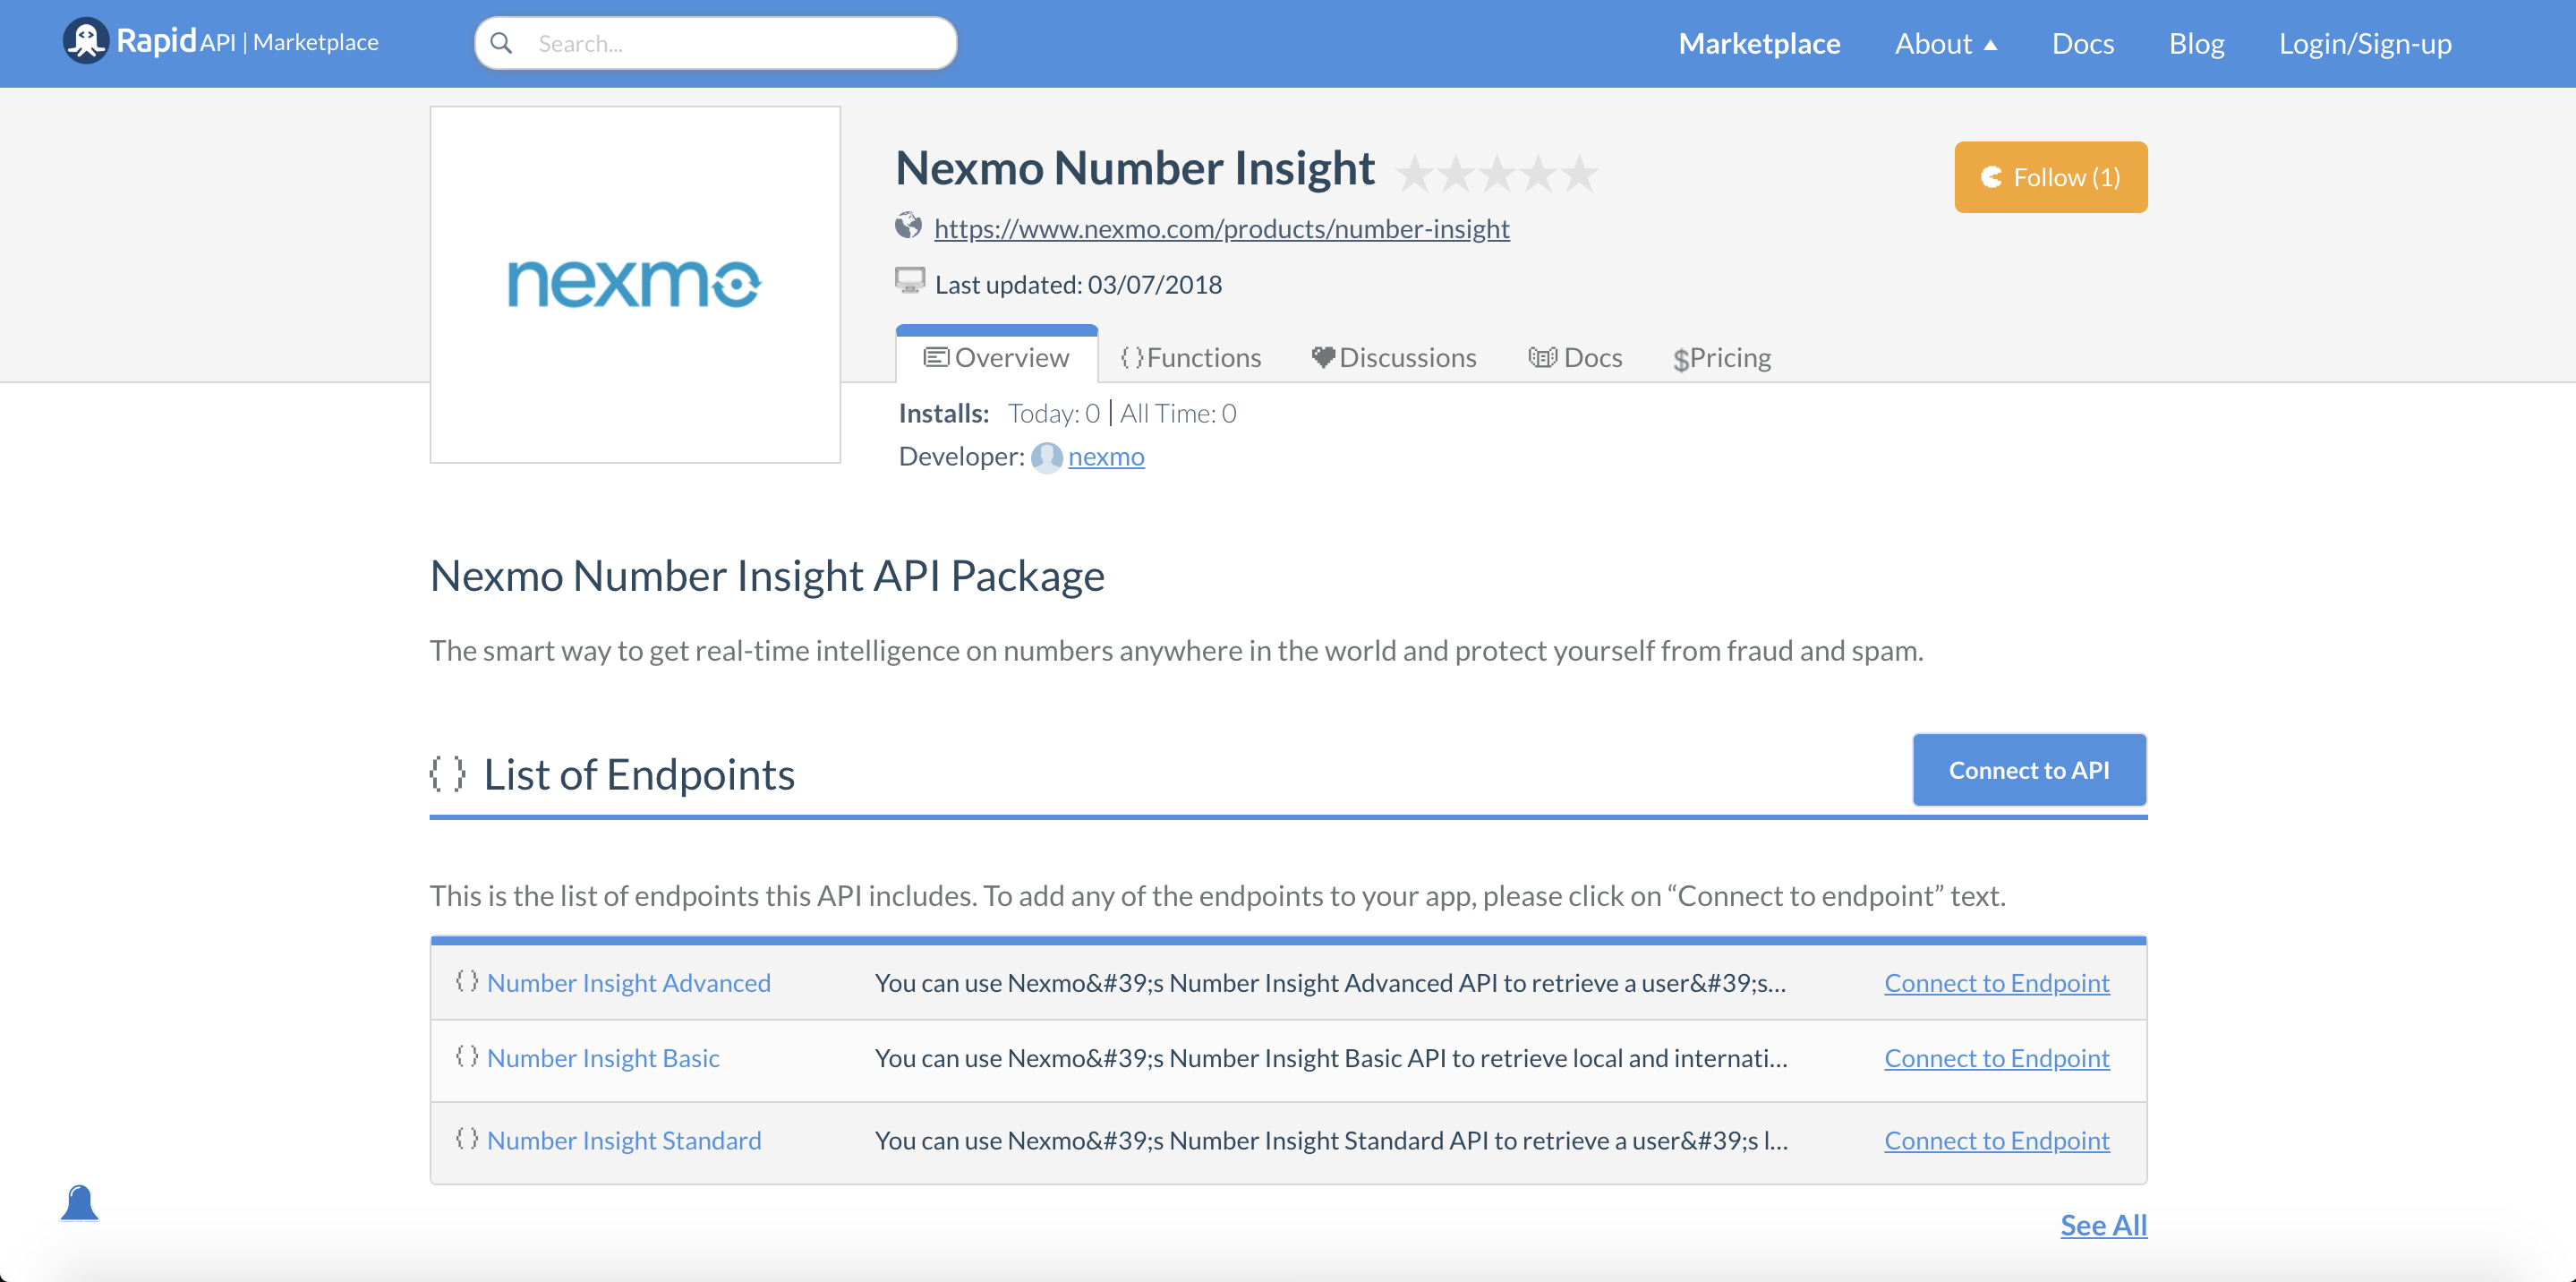 Nexmo Number Insight API listed on RapidAPI